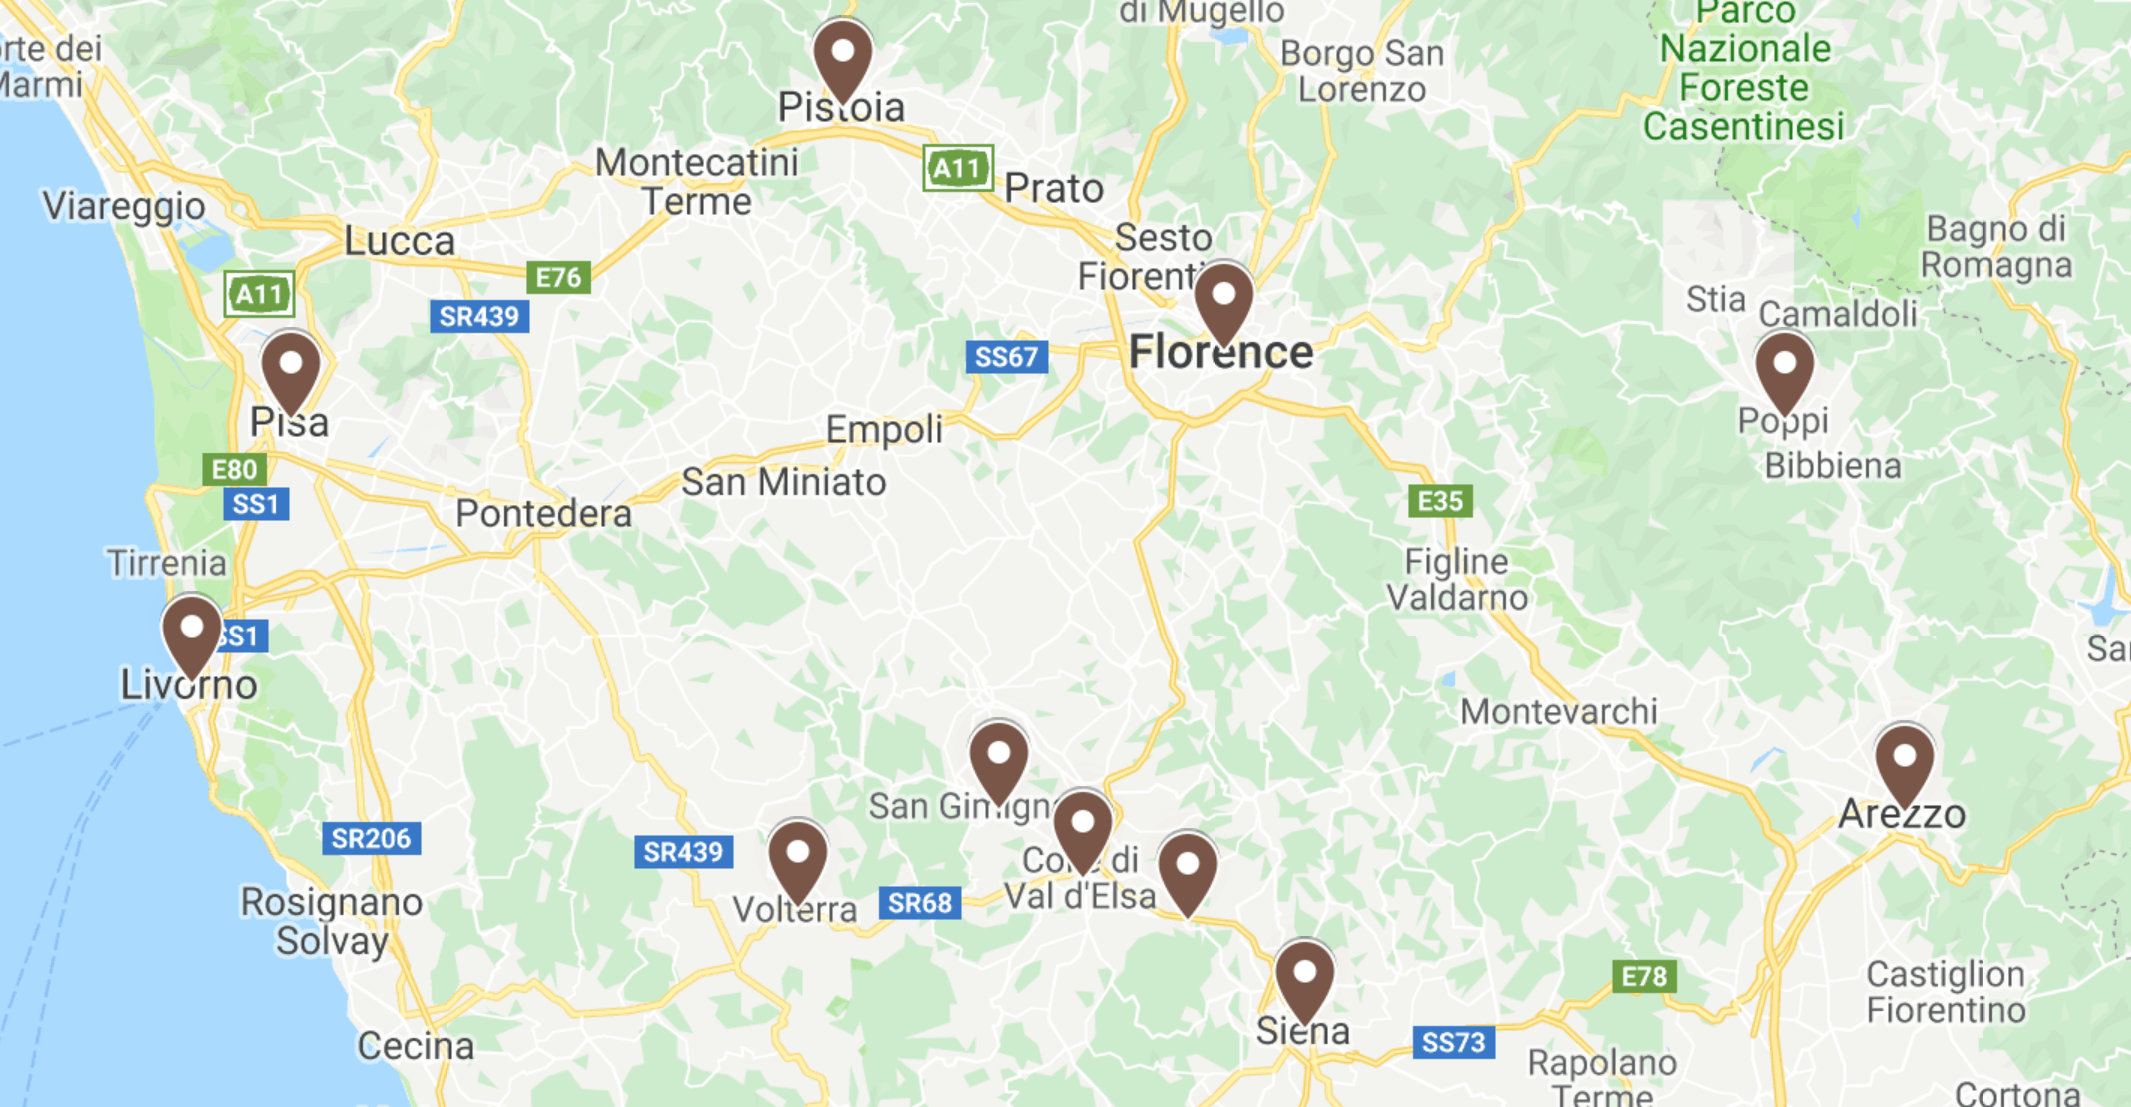 Tuscany Road Trip Map Of Best Stops In Italy | Map Of Best Road Trip Stops In Tuscany